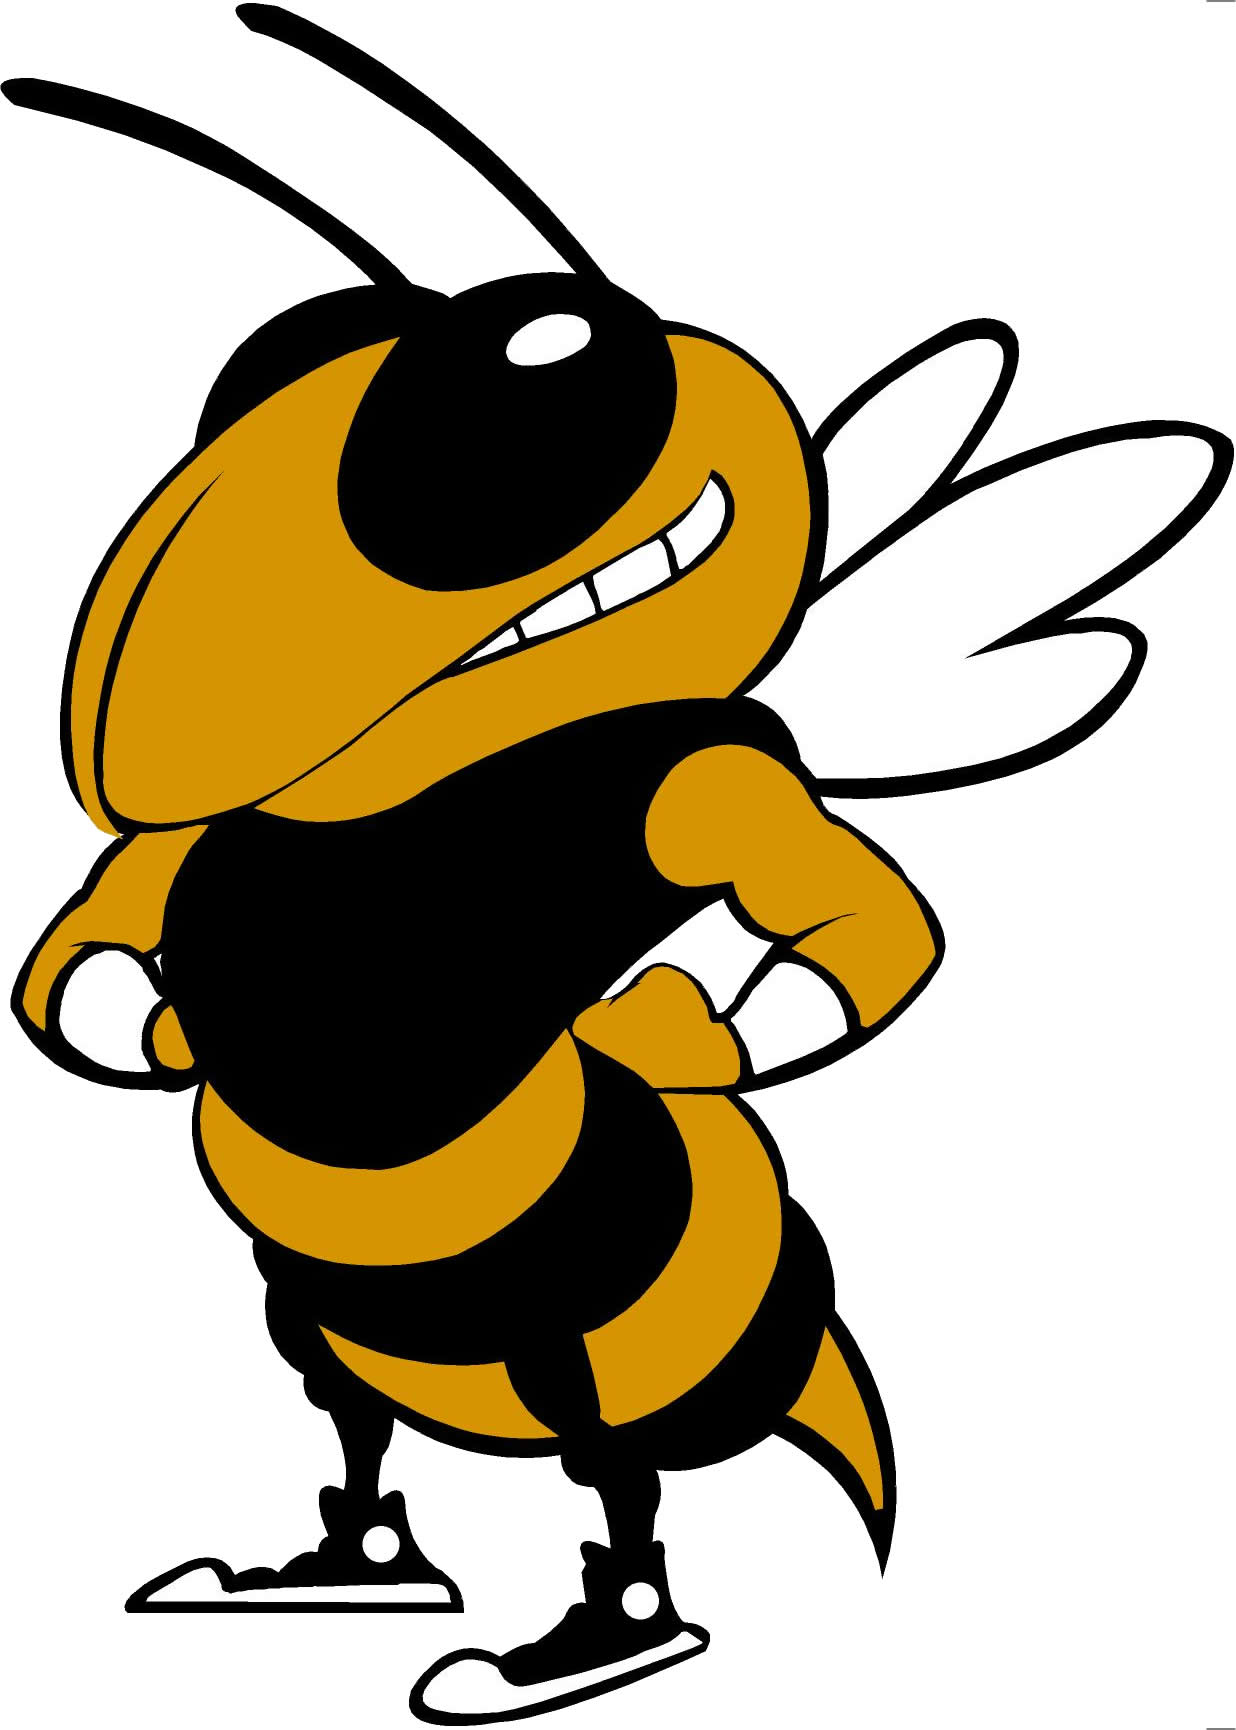 free clip art yellow jacket - photo #10